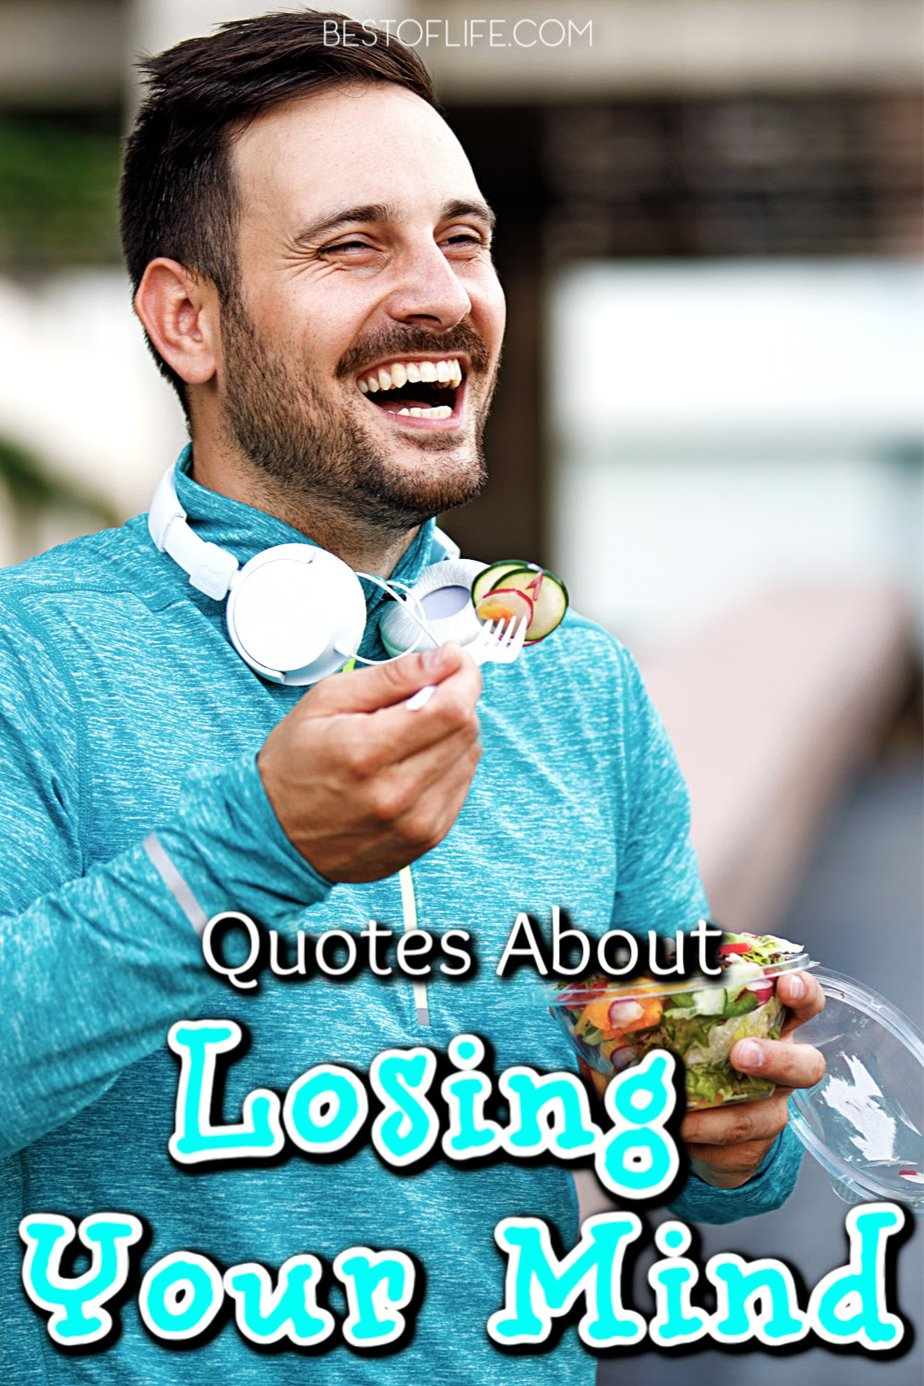 Losing your mind quotes may not solve your problems but they are funny quotes that can help you cope when times are stressful. Funny Quotes | Quotes to Inspire | Motivational Quotes | Quotes about Stress | Sarcastic Quotes #quotes #funny via @thebestoflife